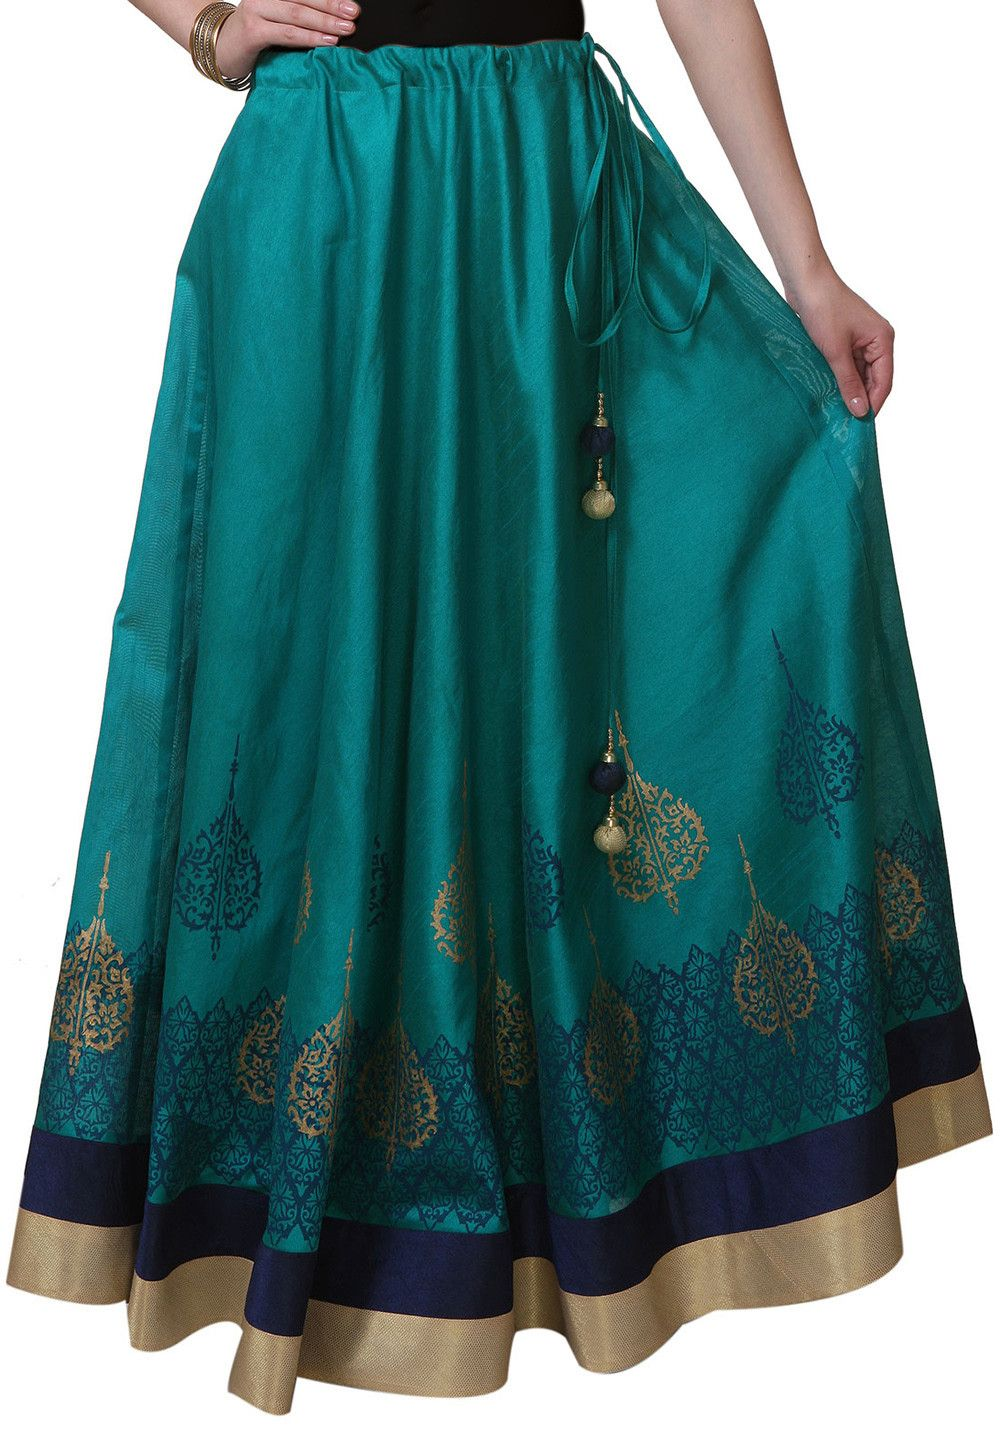 Block Printed Art Silk Long Skirt In Teal Blue | Indian clothes ...